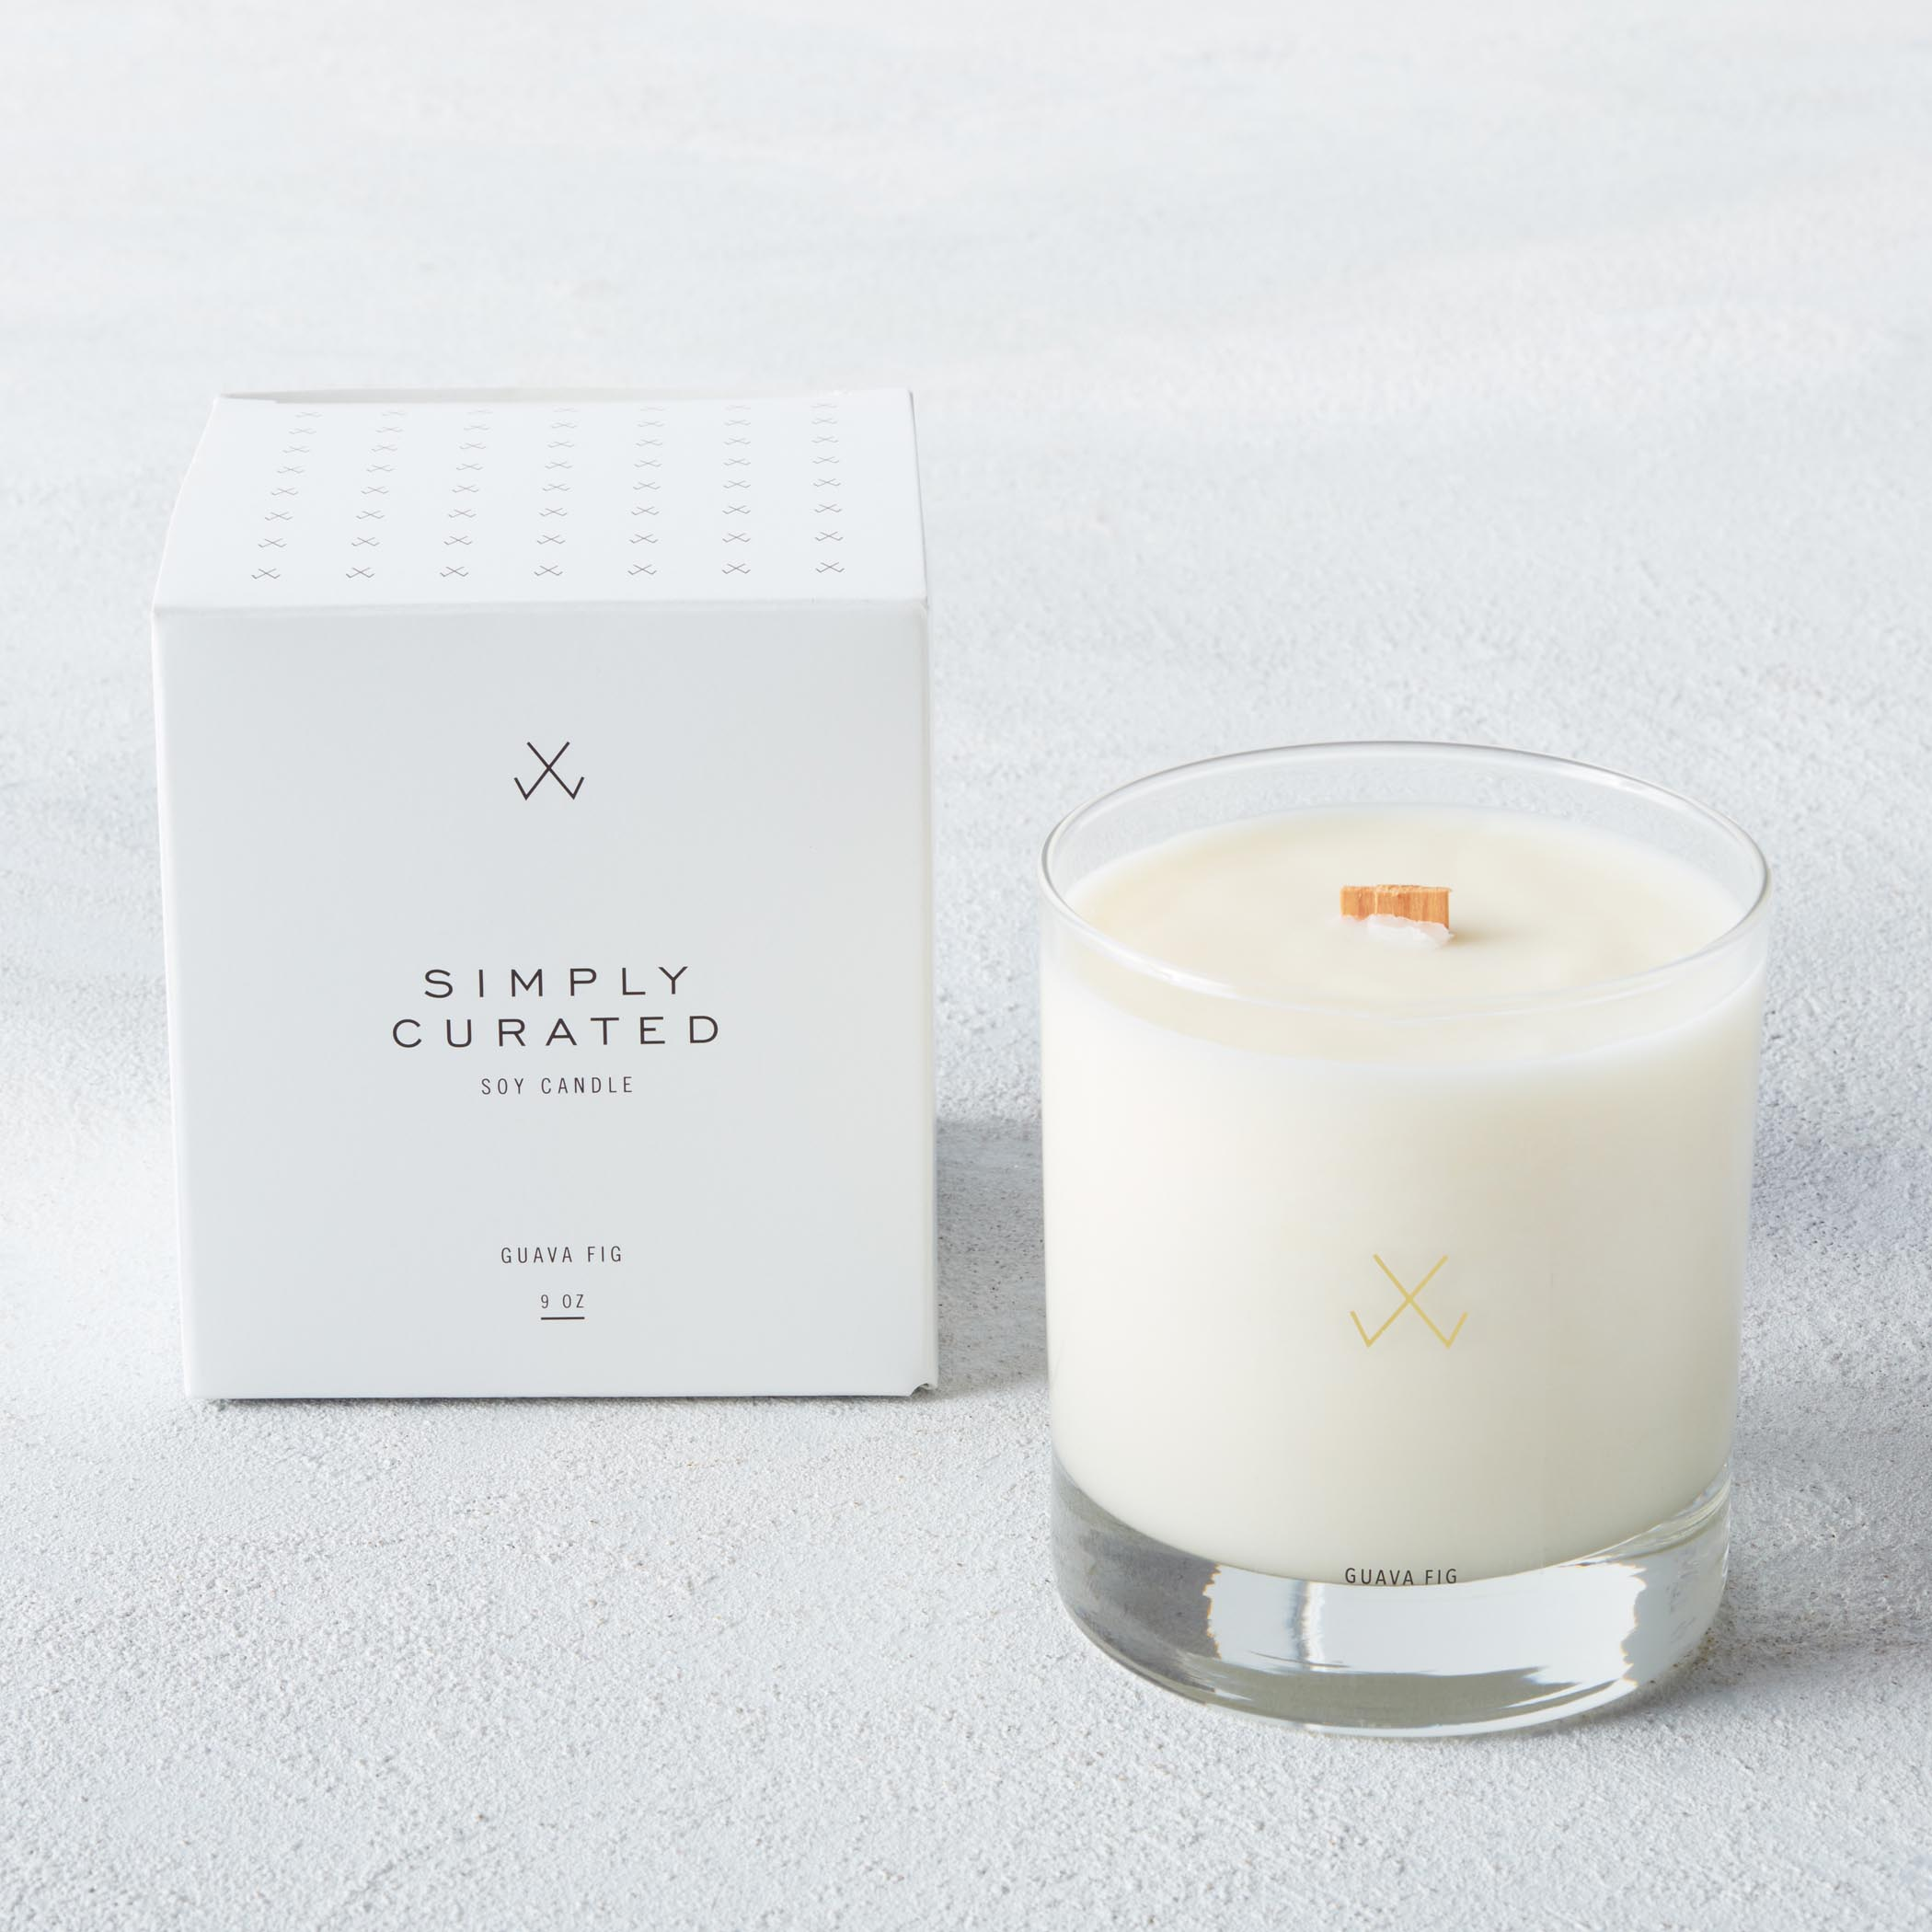 Simply Curated Candle Collection